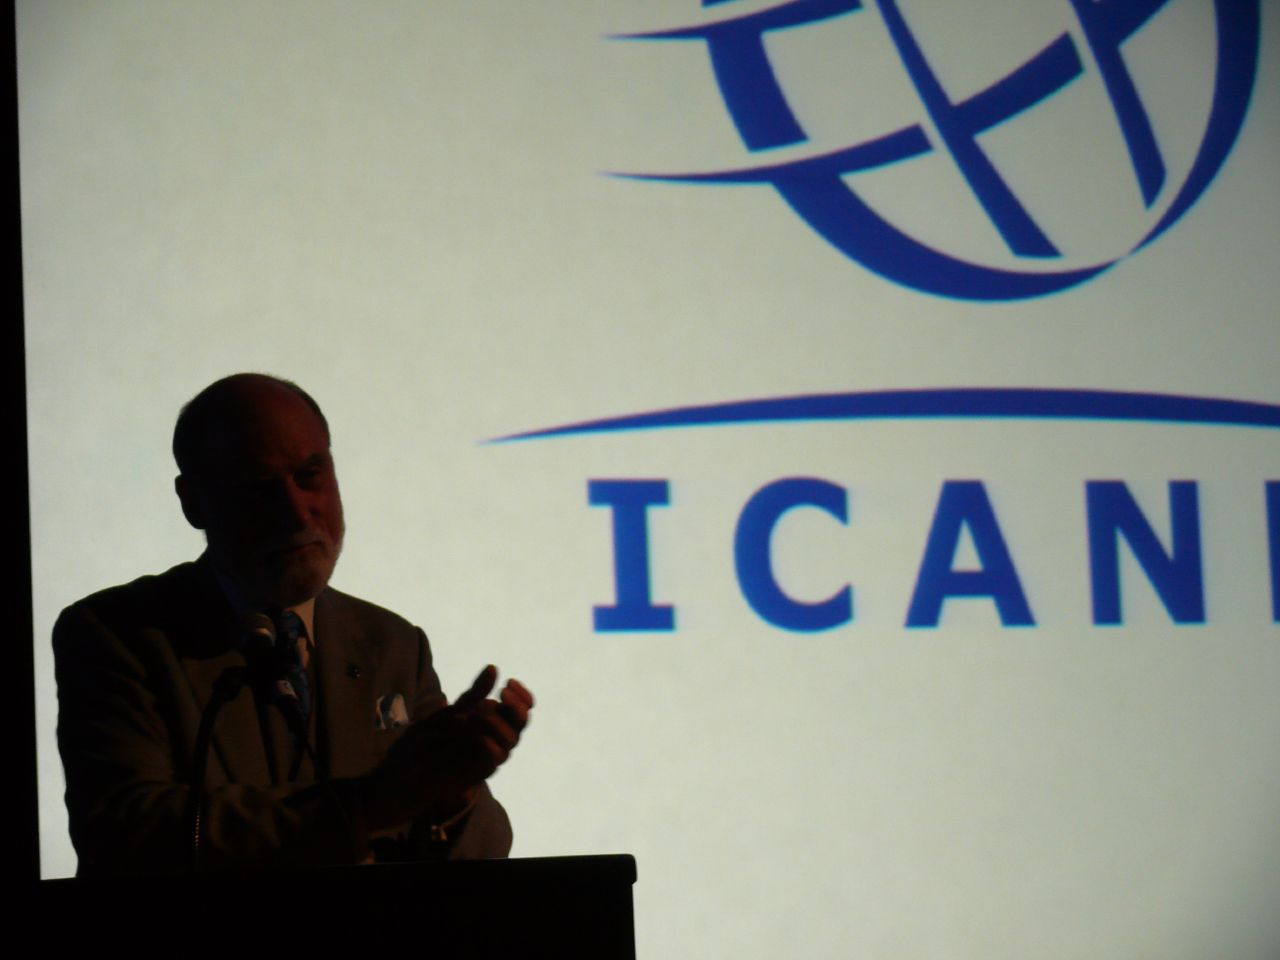 Vint Cerf at ICANN by Veni (CC BY 2.0) https://flic.kr/p/3KWko9